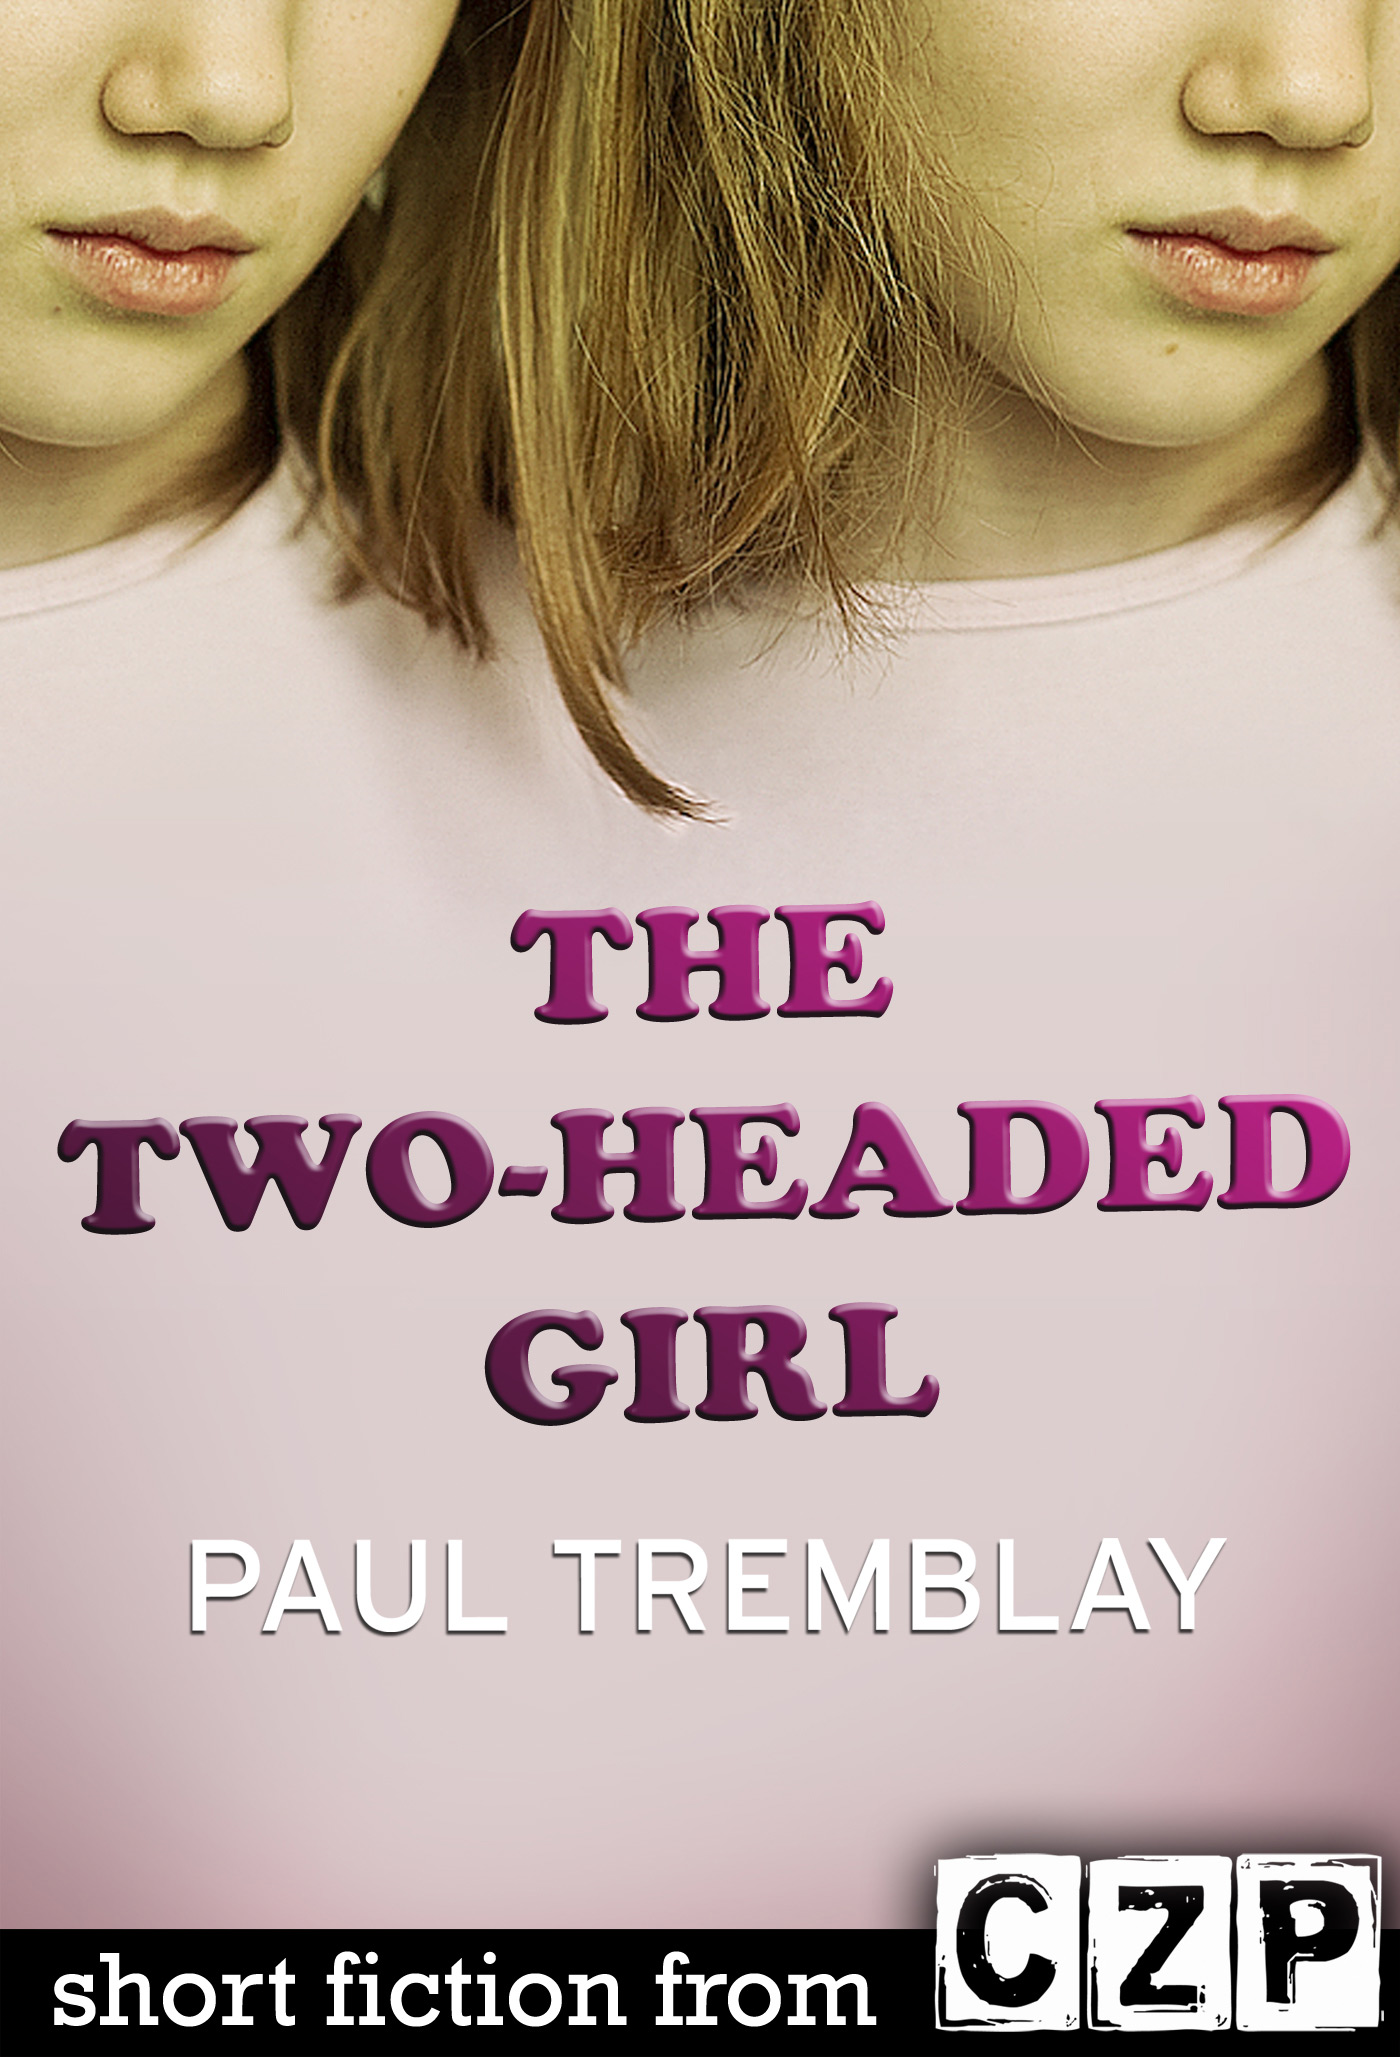 The Two-Headed Girl